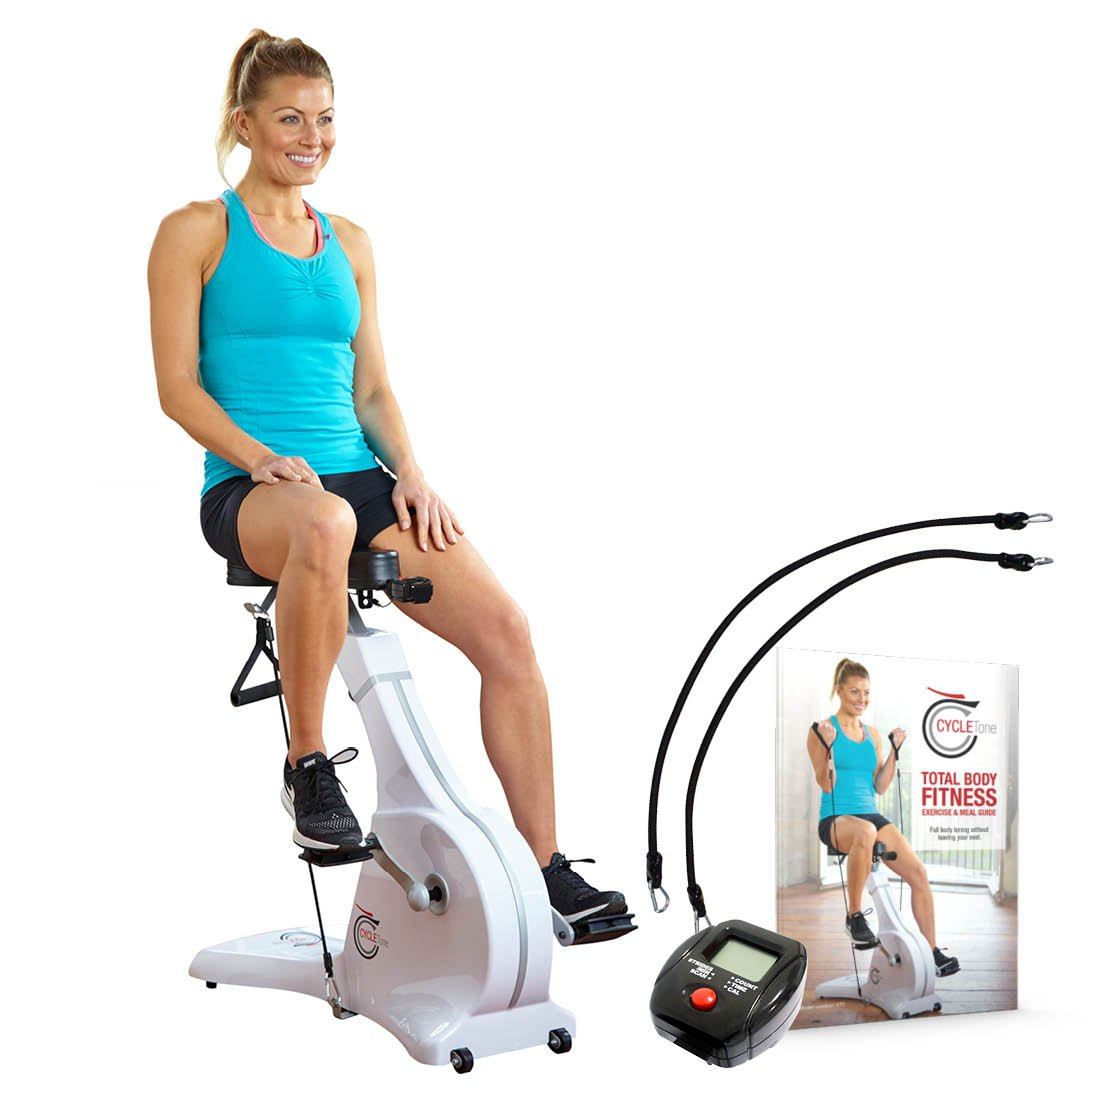 Cycle Tone Exercise Bike with Resistance Bands by New Image BONUS Digital Monitor, Advanced Resistance Bands 8kg (As Seen on High Street TV)